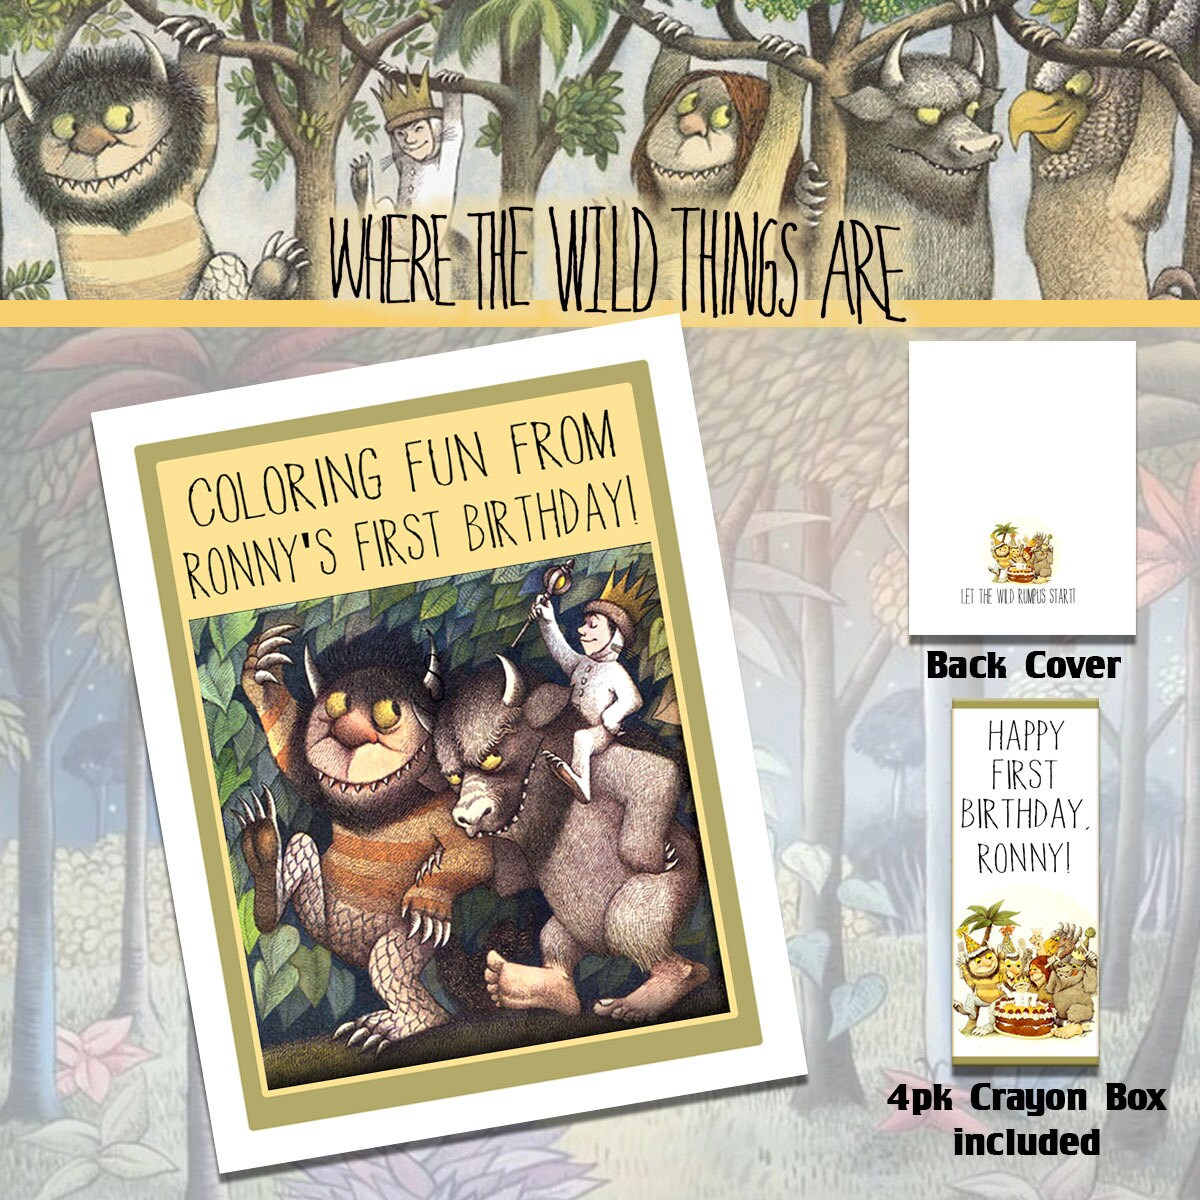 Where the Wild Things Are Coloring Book & Crayons/Birthday | Etsy